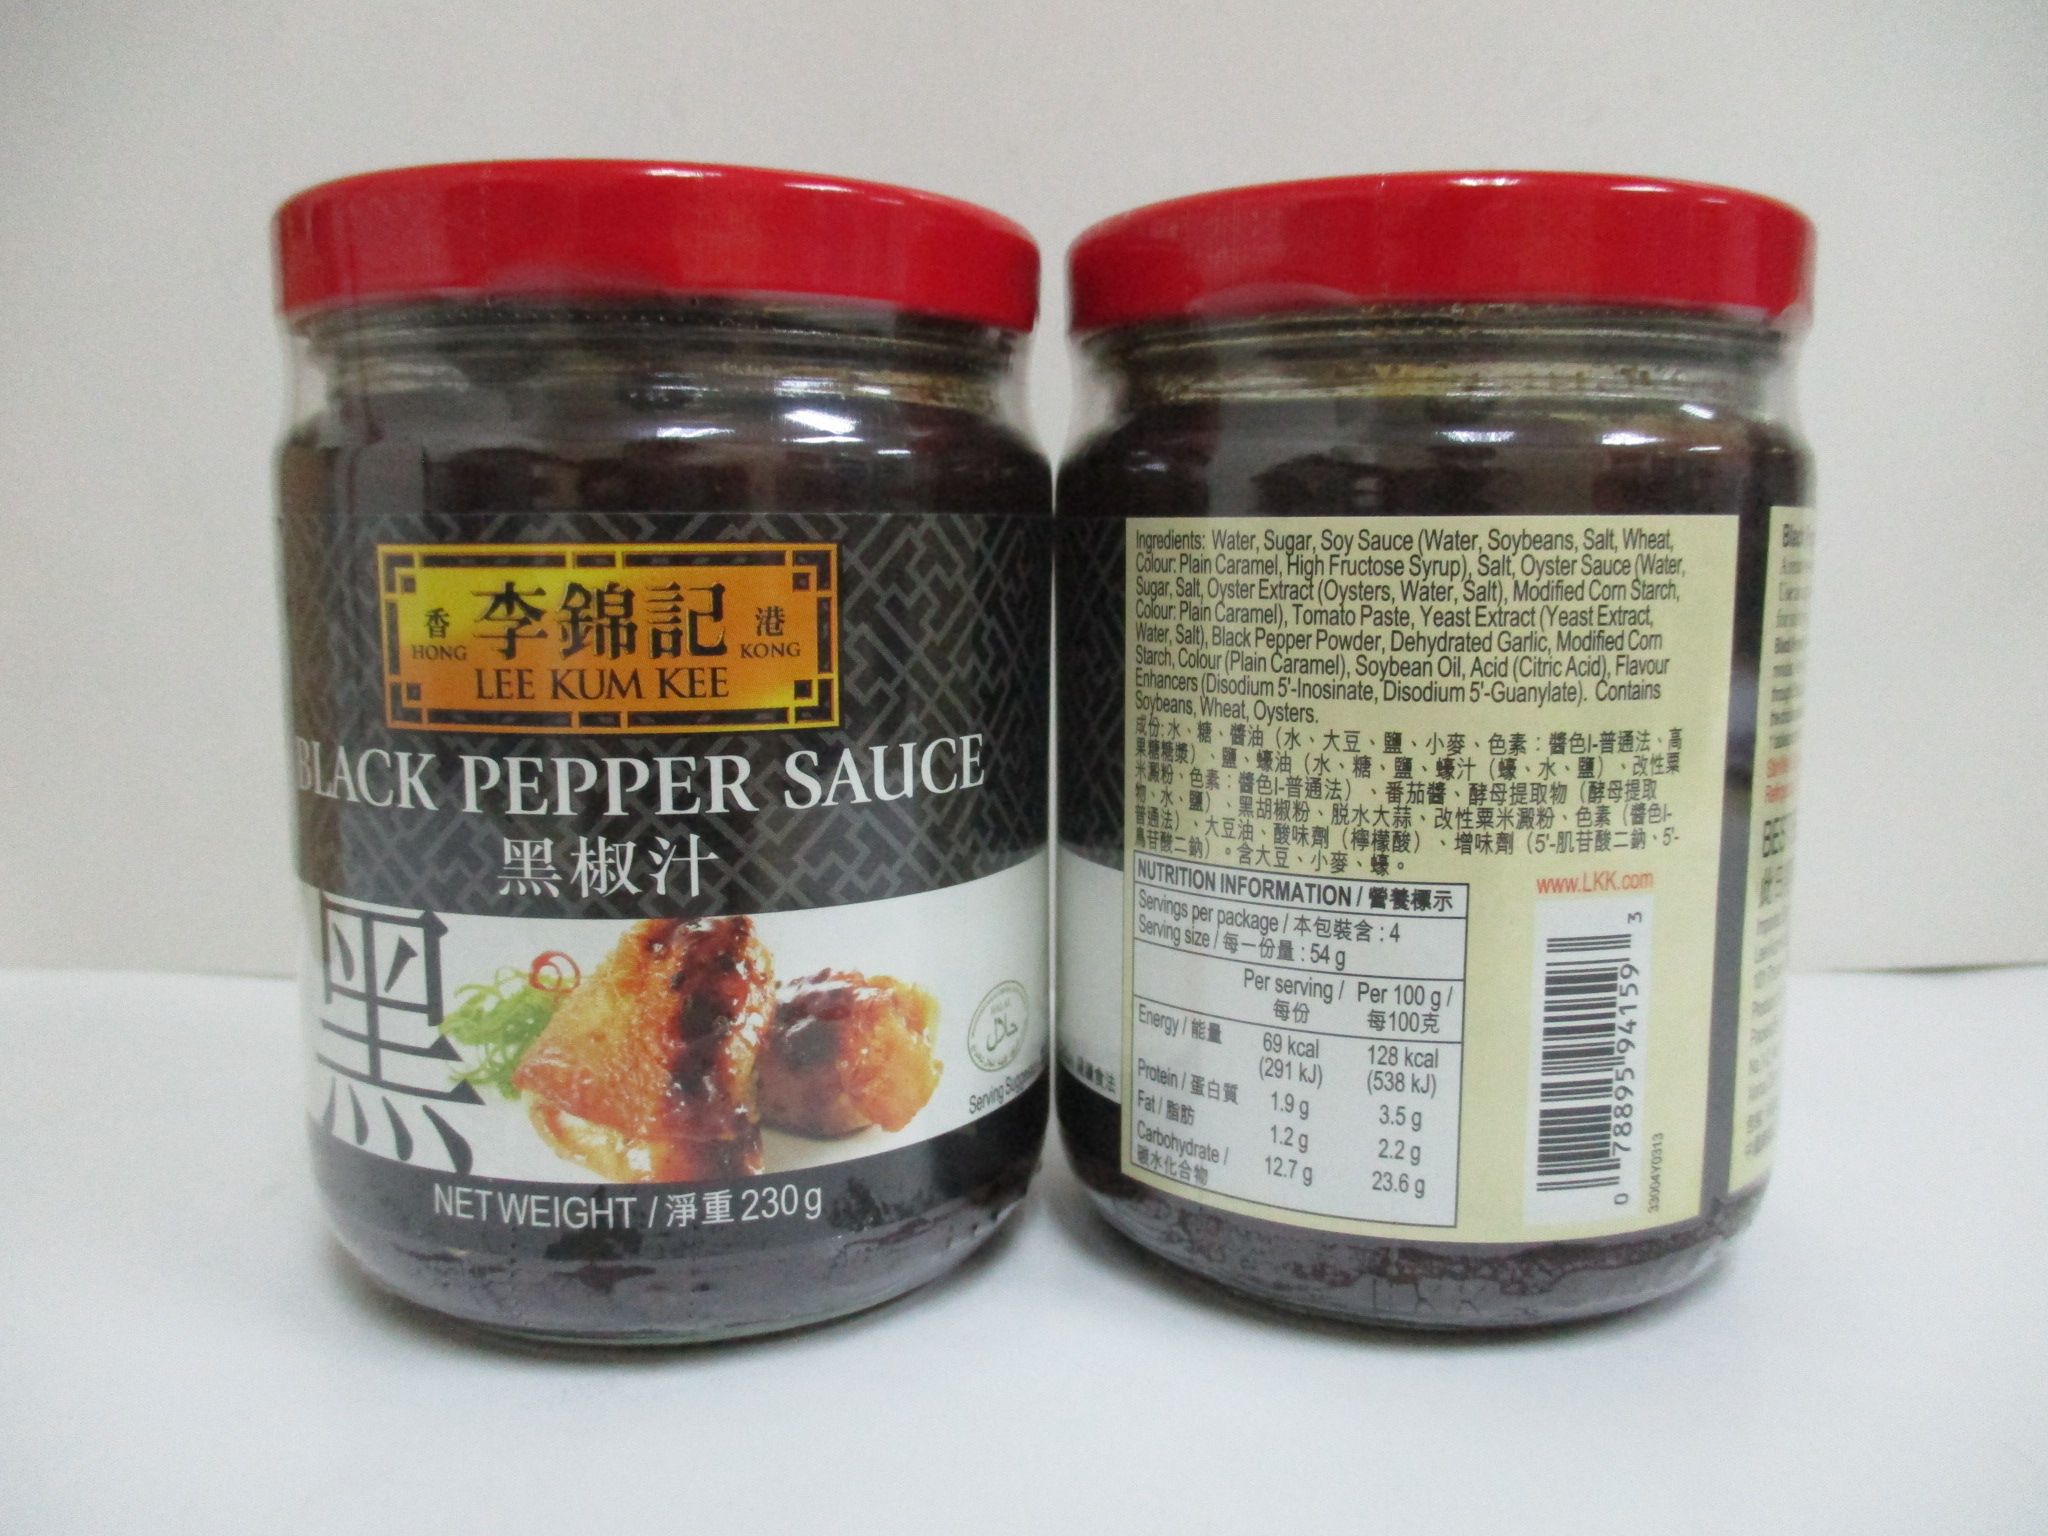 LKK Black Pepper Sauce (12 x 230g) NEW